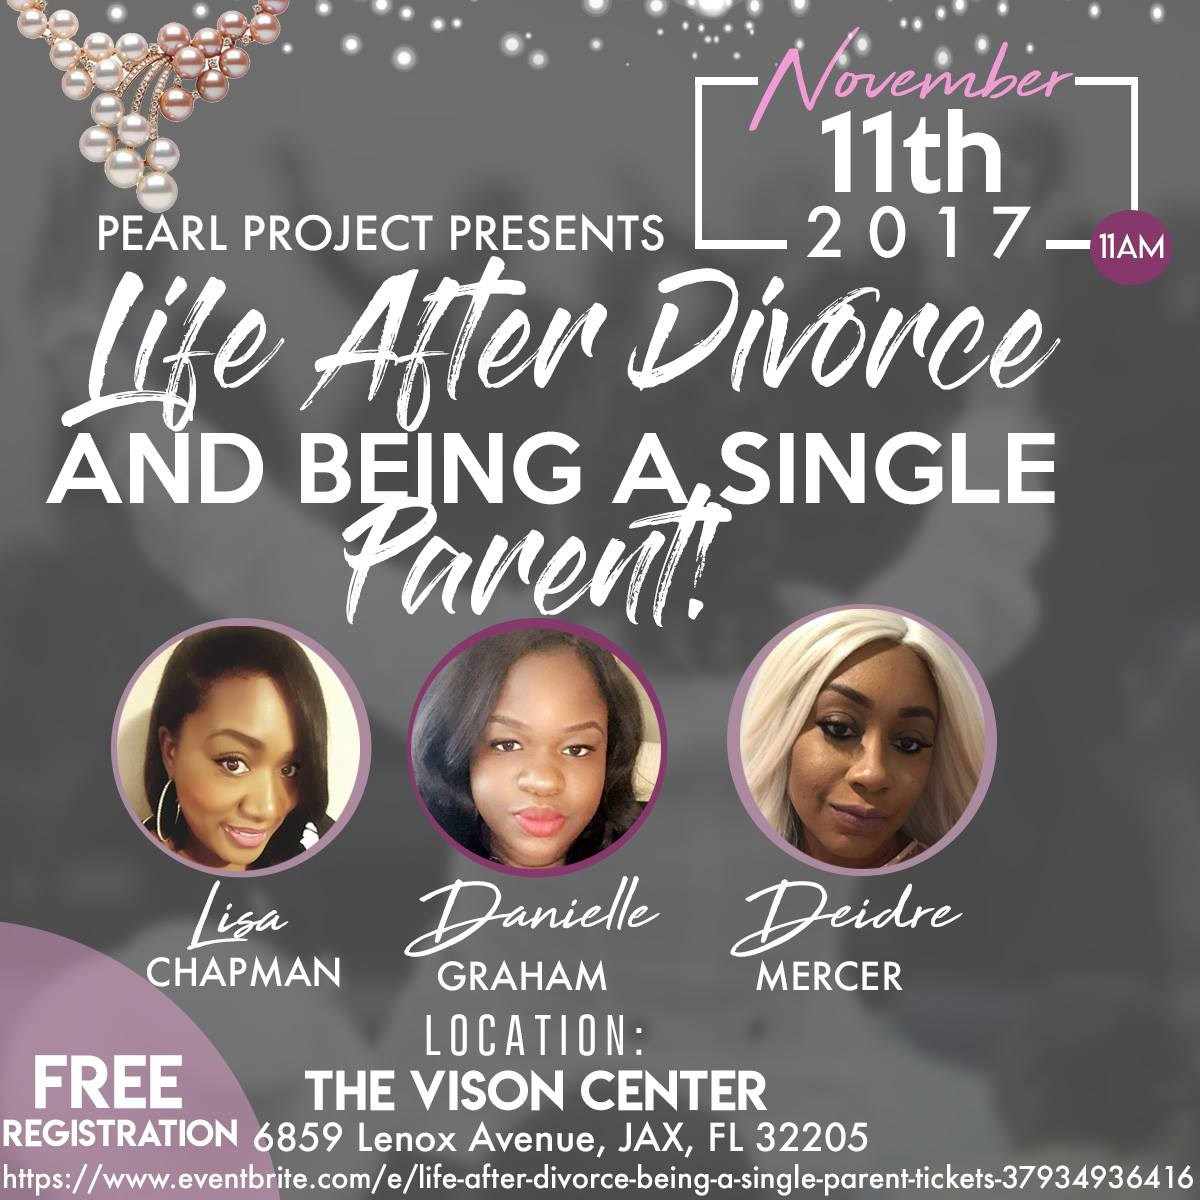 Have you ever felt like you were the only one who had to regroup or cope with Life after Divorce?  Or say Becoming a Single Parent is new to you or Maybe its always been your portion. Come out and be Enlightened or maybe even Enligten someone! This is definitely an Event you do not want to Miss!